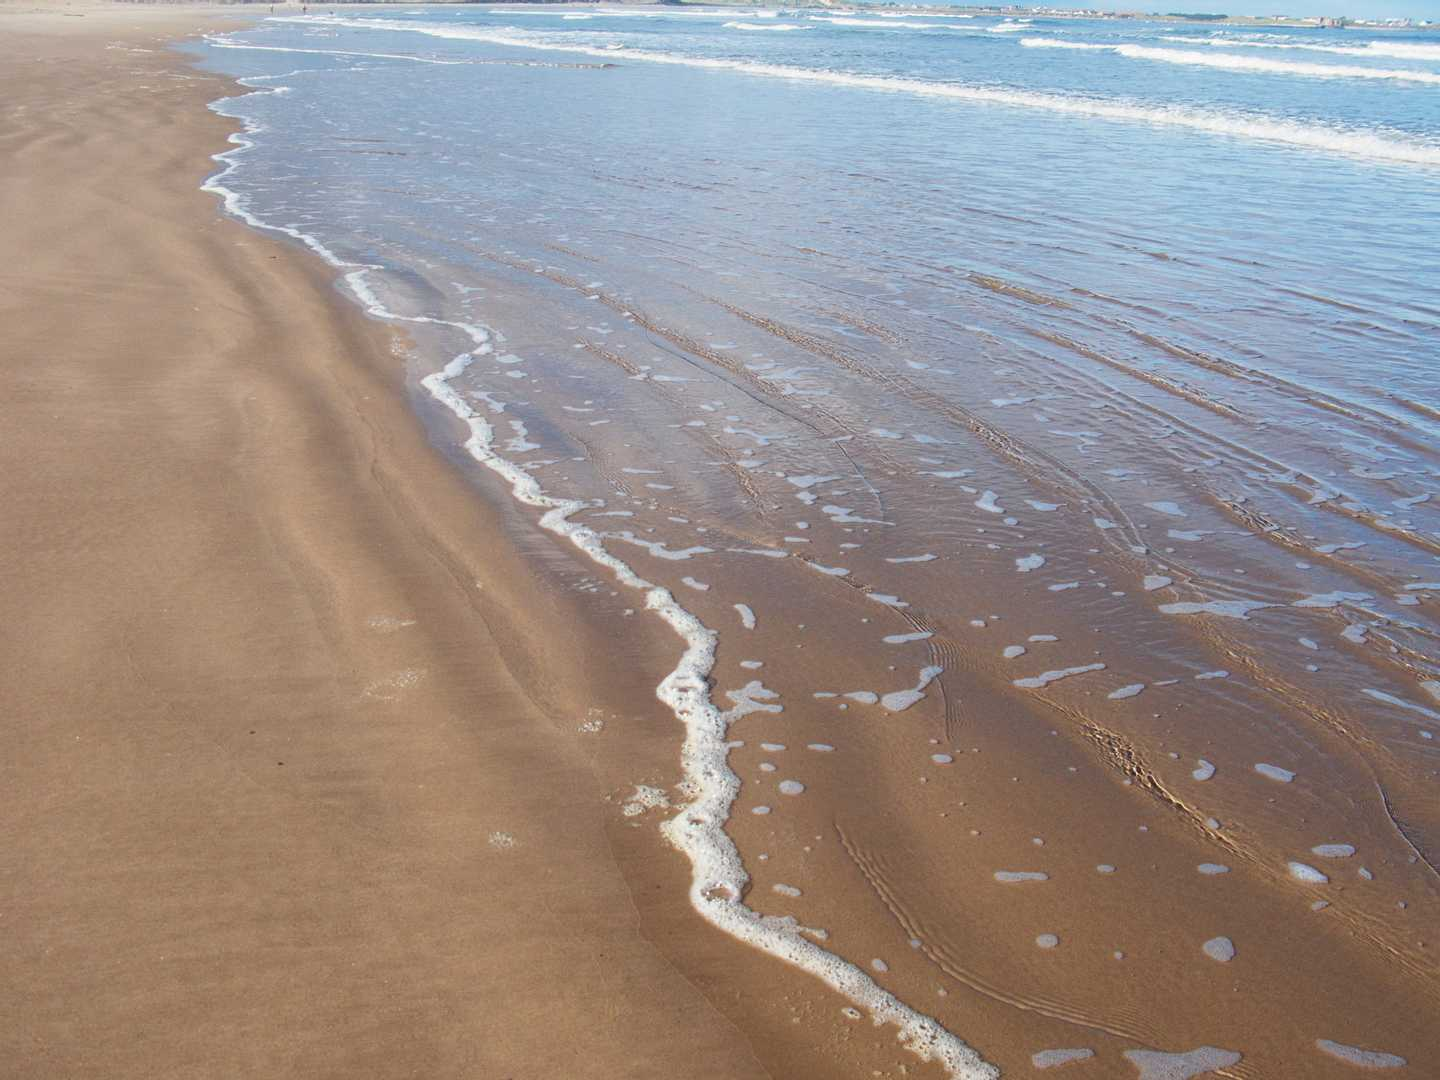 Waves washing over sand